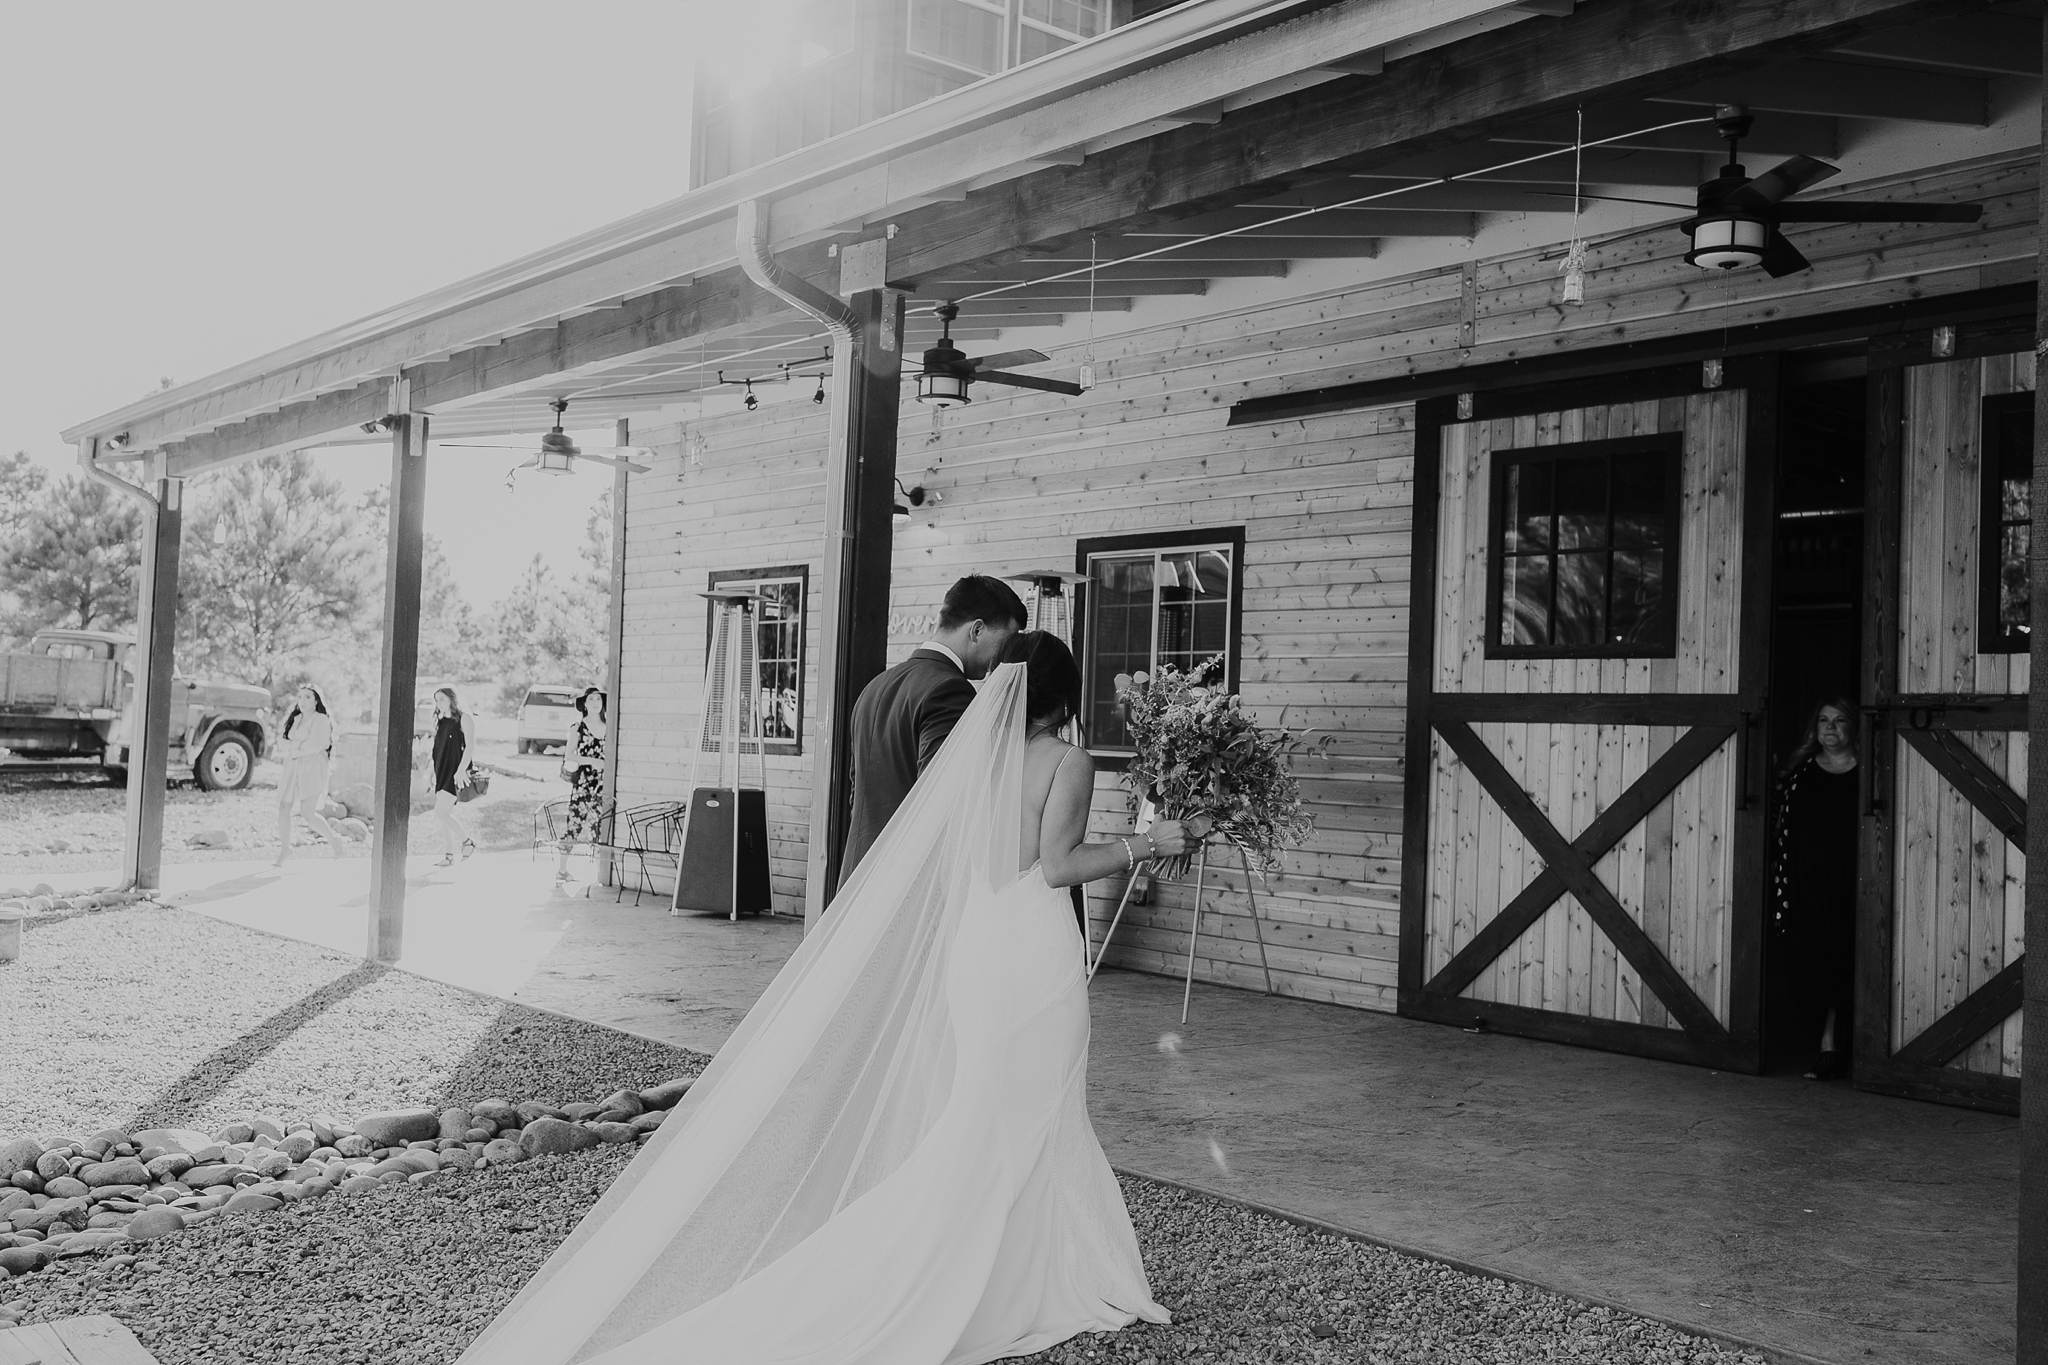 Alicia+lucia+photography+-+albuquerque+wedding+photographer+-+santa+fe+wedding+photography+-+new+mexico+wedding+photographer+-+new+mexico+wedding+-+new+mexico+wedding+-+barn+wedding+-+enchanted+vine+barn+wedding+-+ruidoso+wedding_0112.jpg